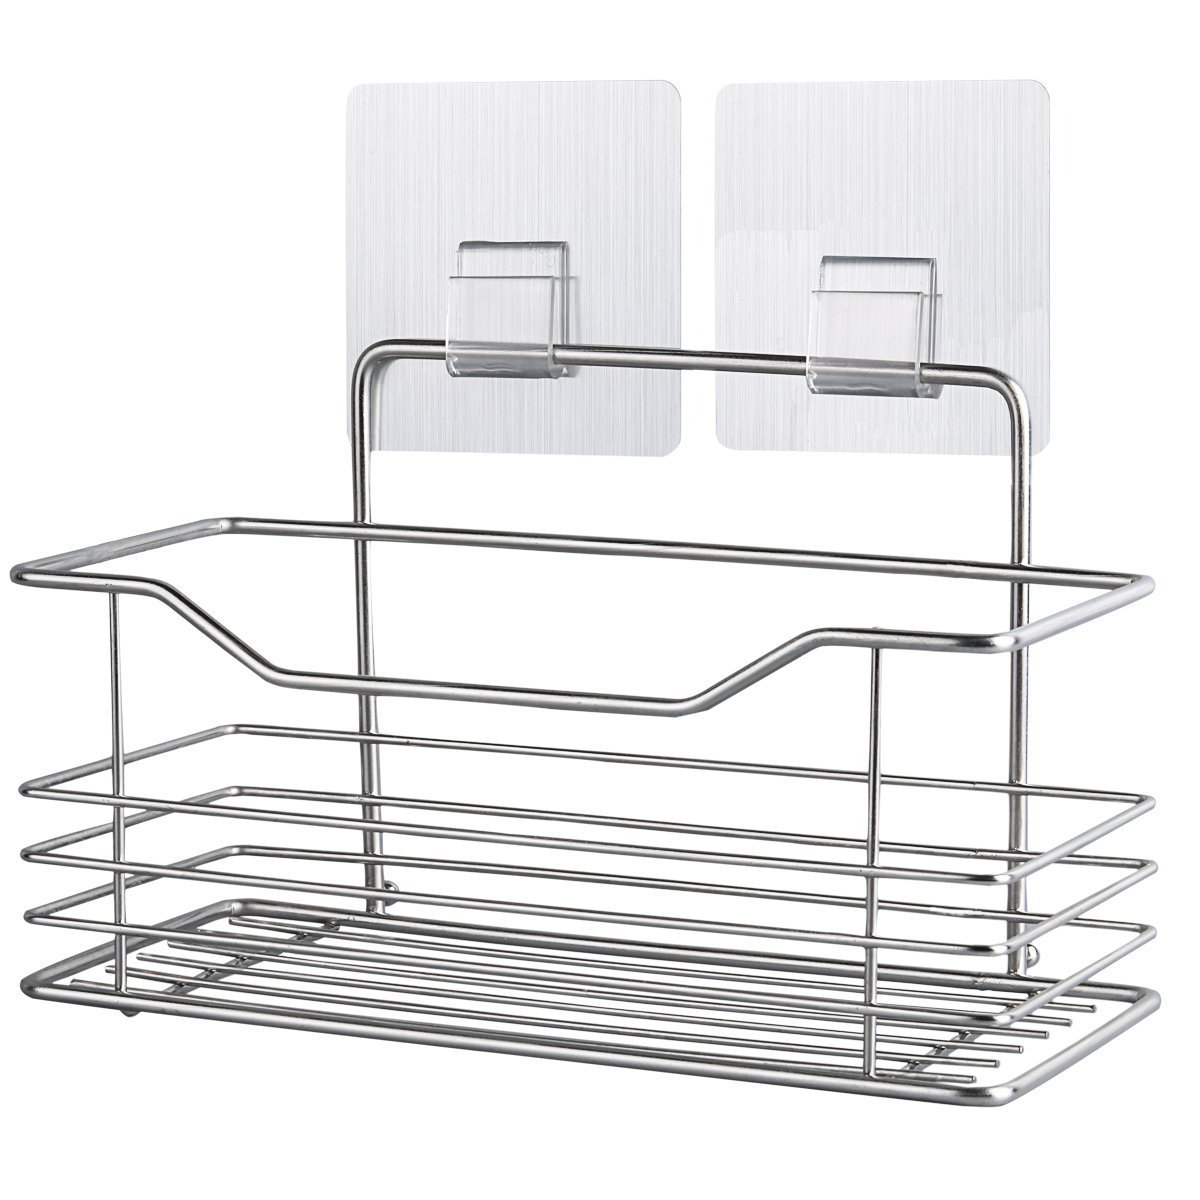 COOLWEST Shower Caddy Basket for Shampoo Wall Adhesive Stainless Steel Organizer Holder for Kitchen Bathroom Toilet Accessories 8.6''